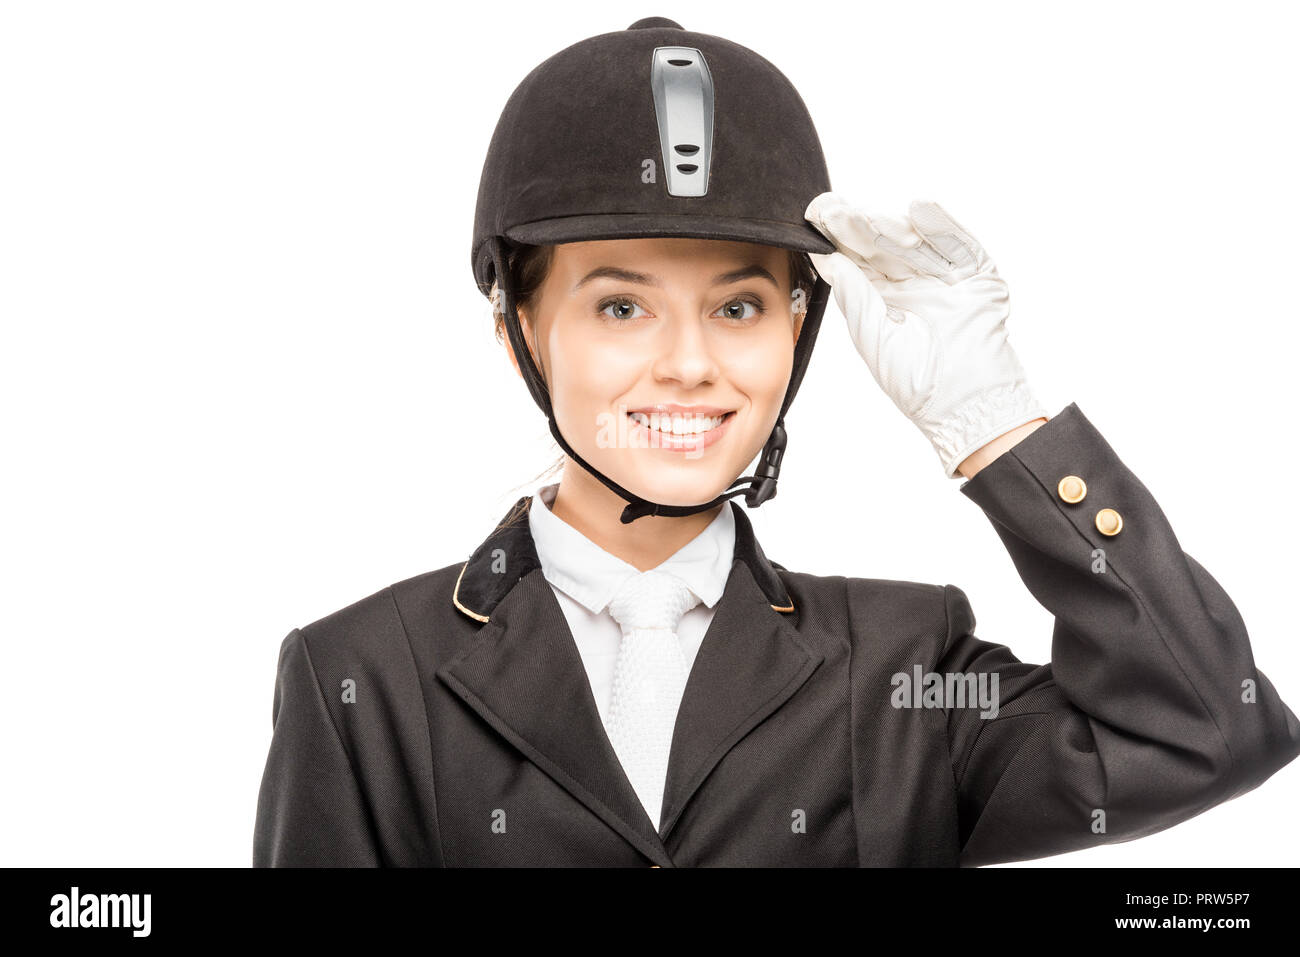 close-up portrait of smiling young horsewoman in safety helmet looking at camera isolated on white - Stock Image